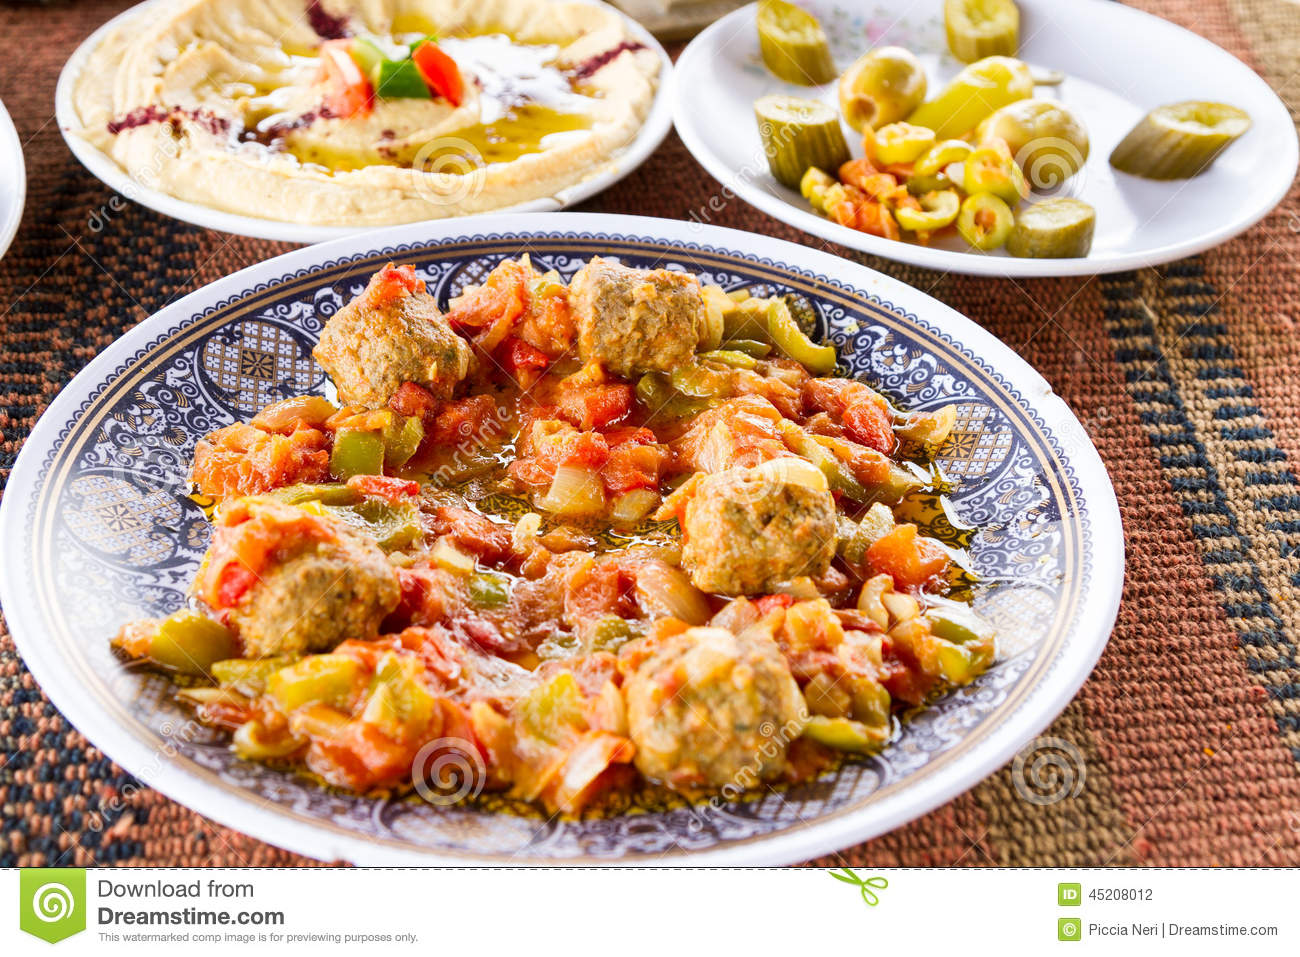 how to eat middle eastern food